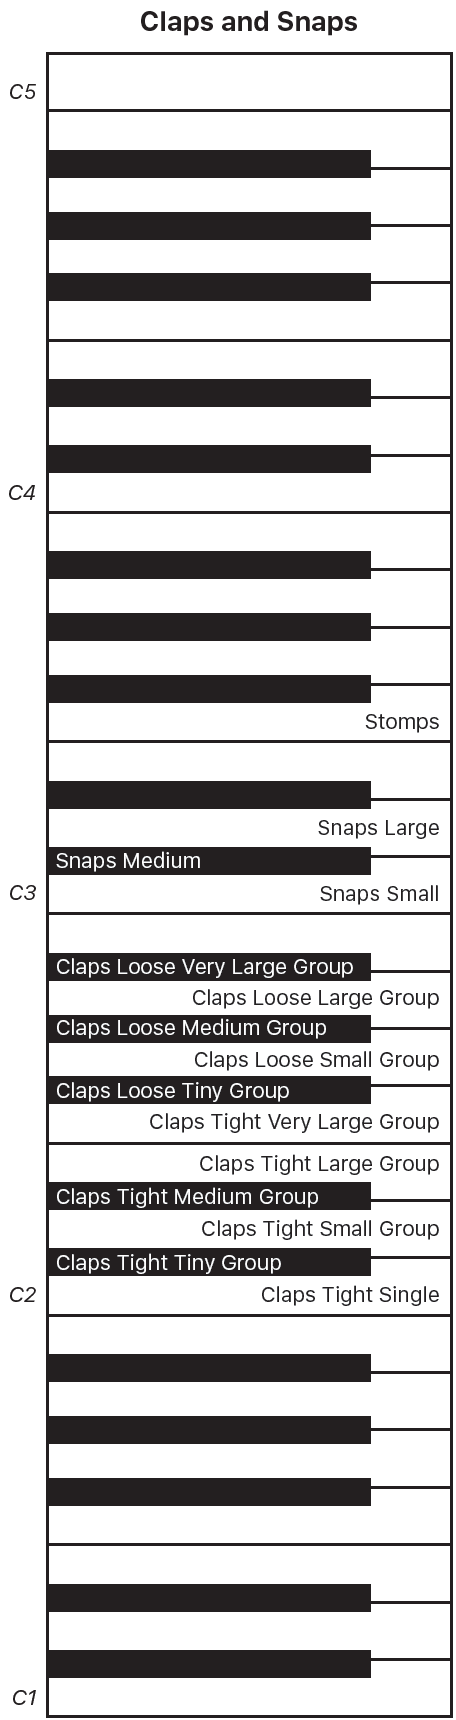 Figure. Claps and Snaps performance keyboard map.